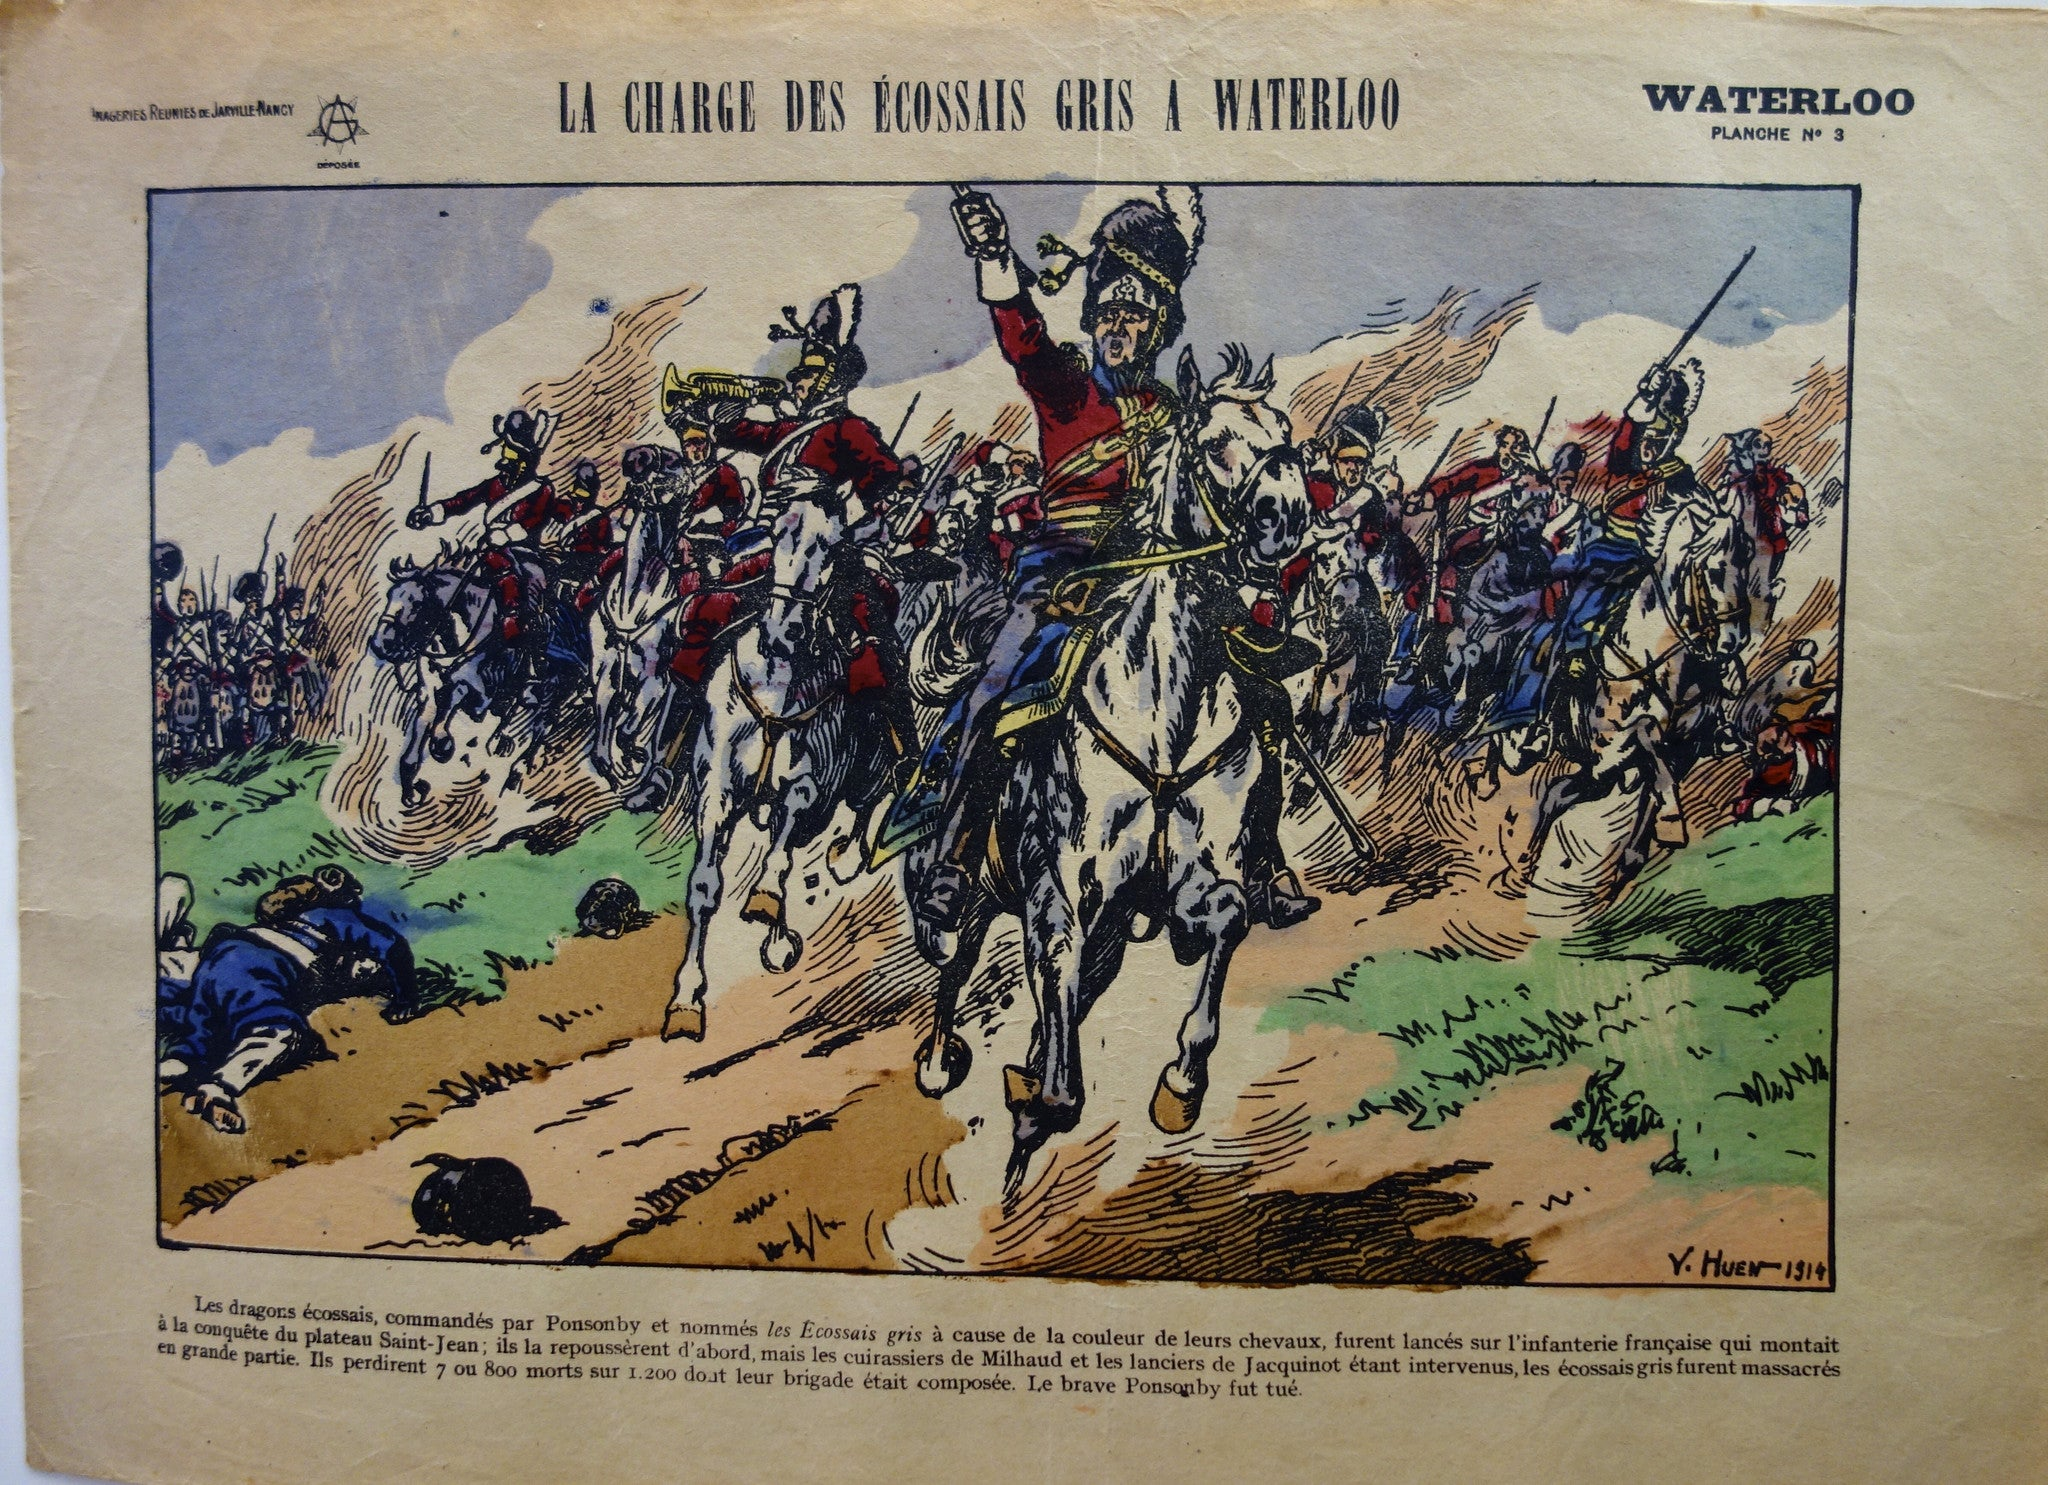 La Charge Des Ecossais Gris A Waterloo